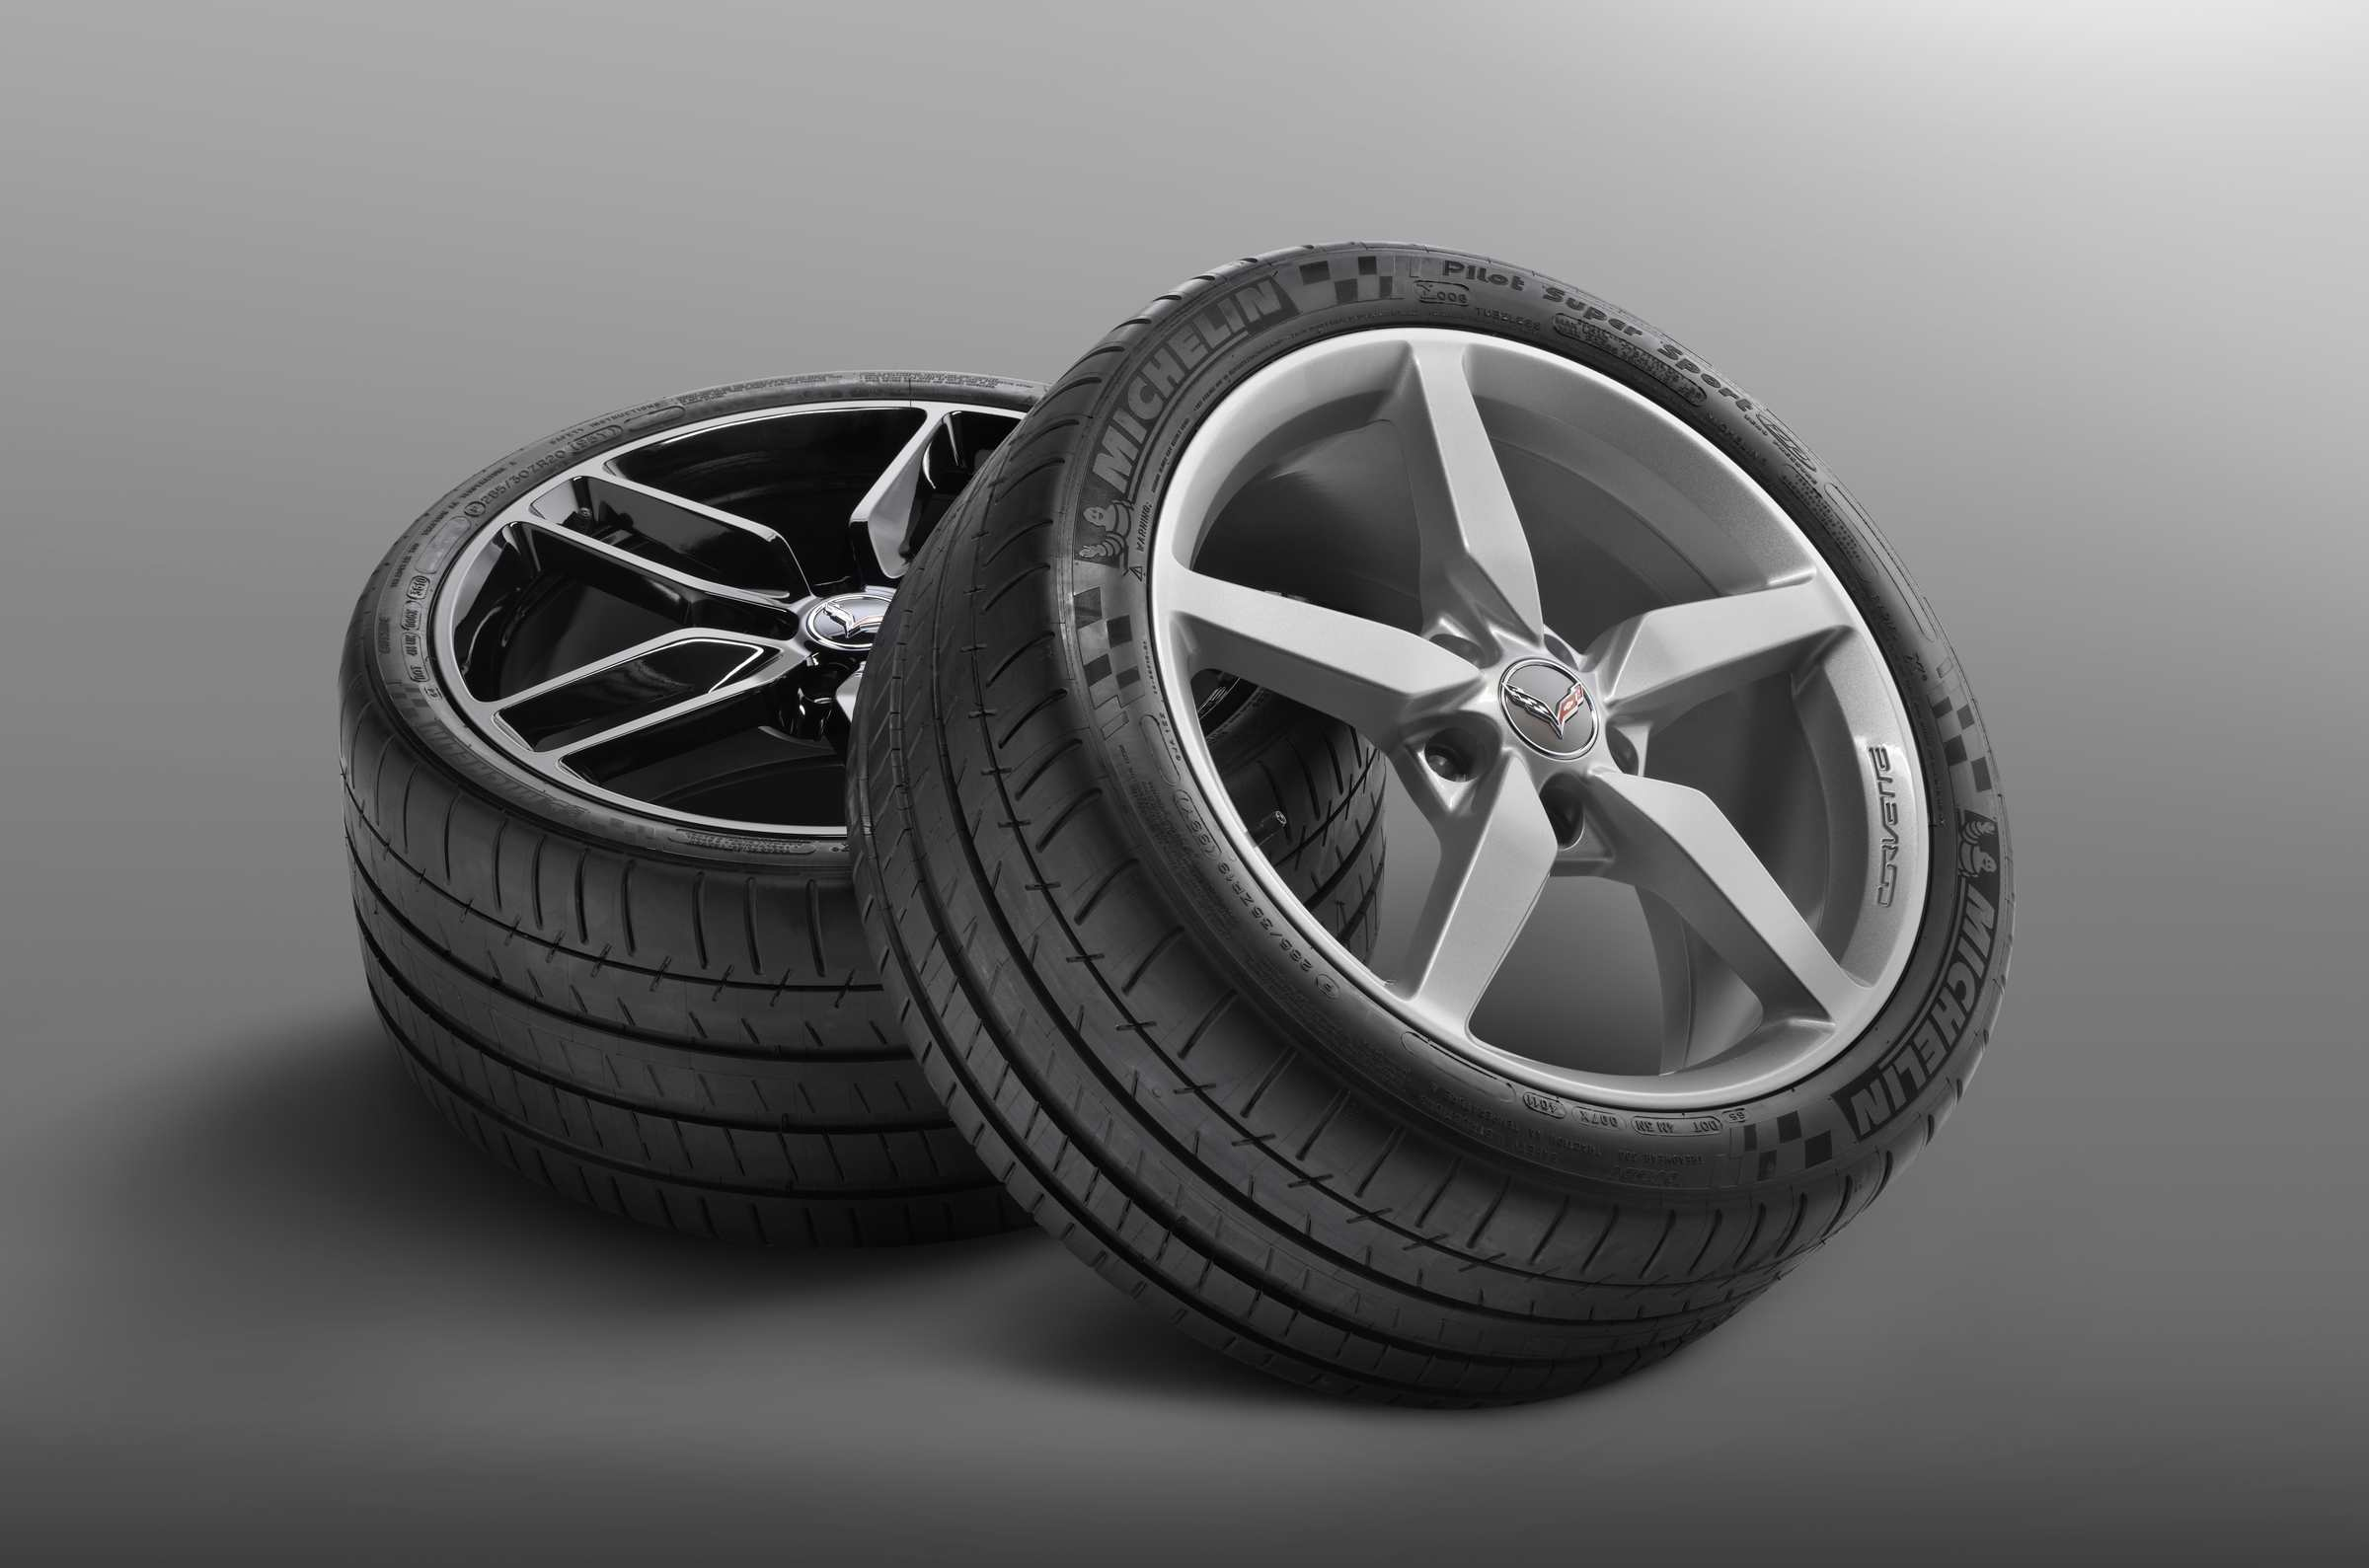 What s the best winter tire for a Corvette Stingray